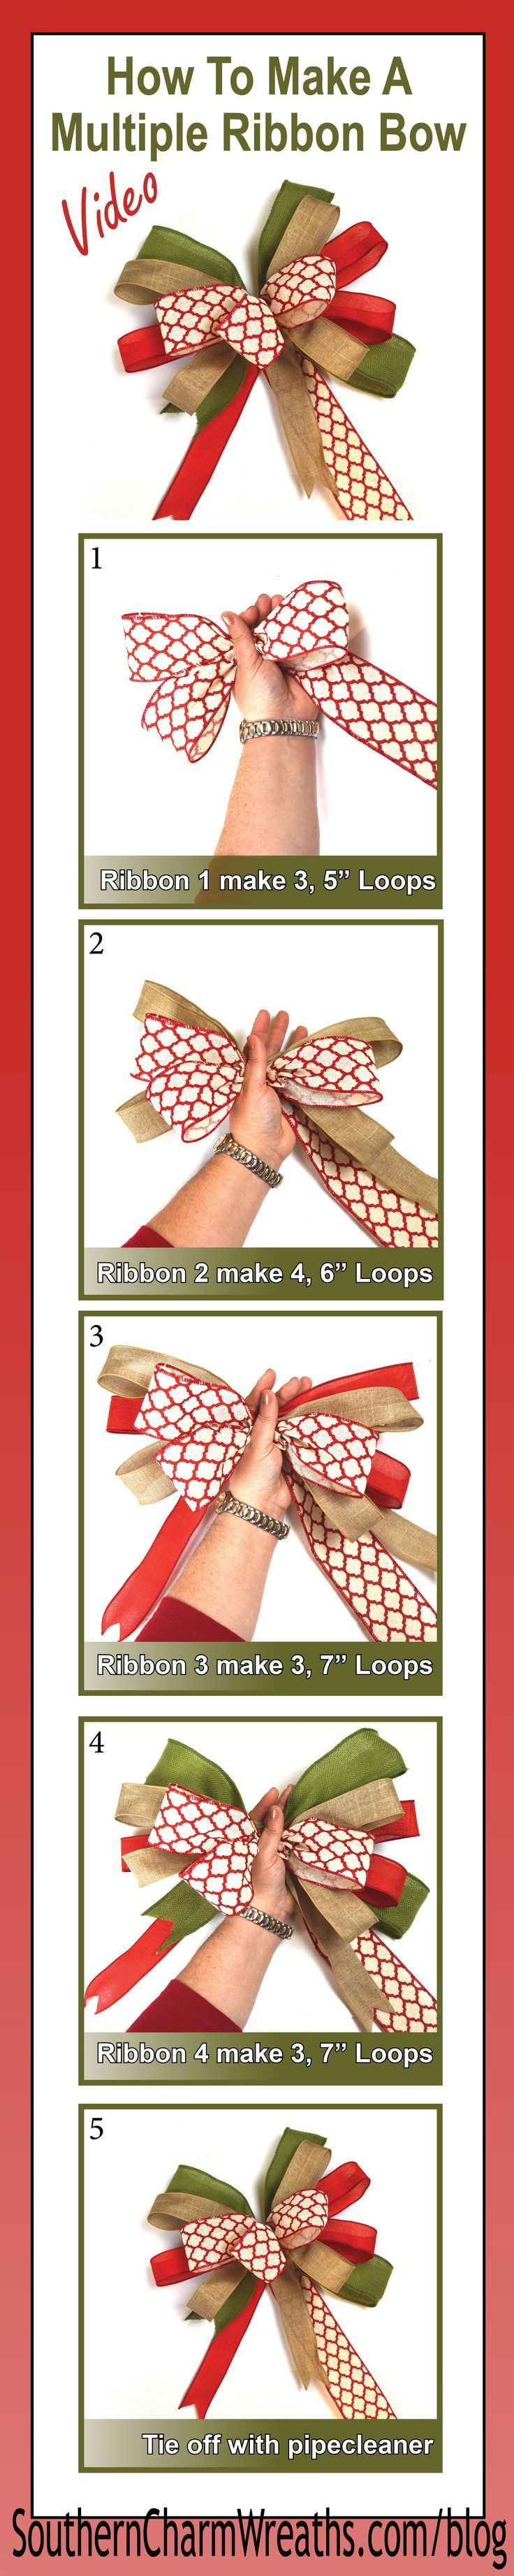 Click image for Video - How to make a bow using multiple ribbons. I like adding these to my Christmas wreaths, trees and garlands.